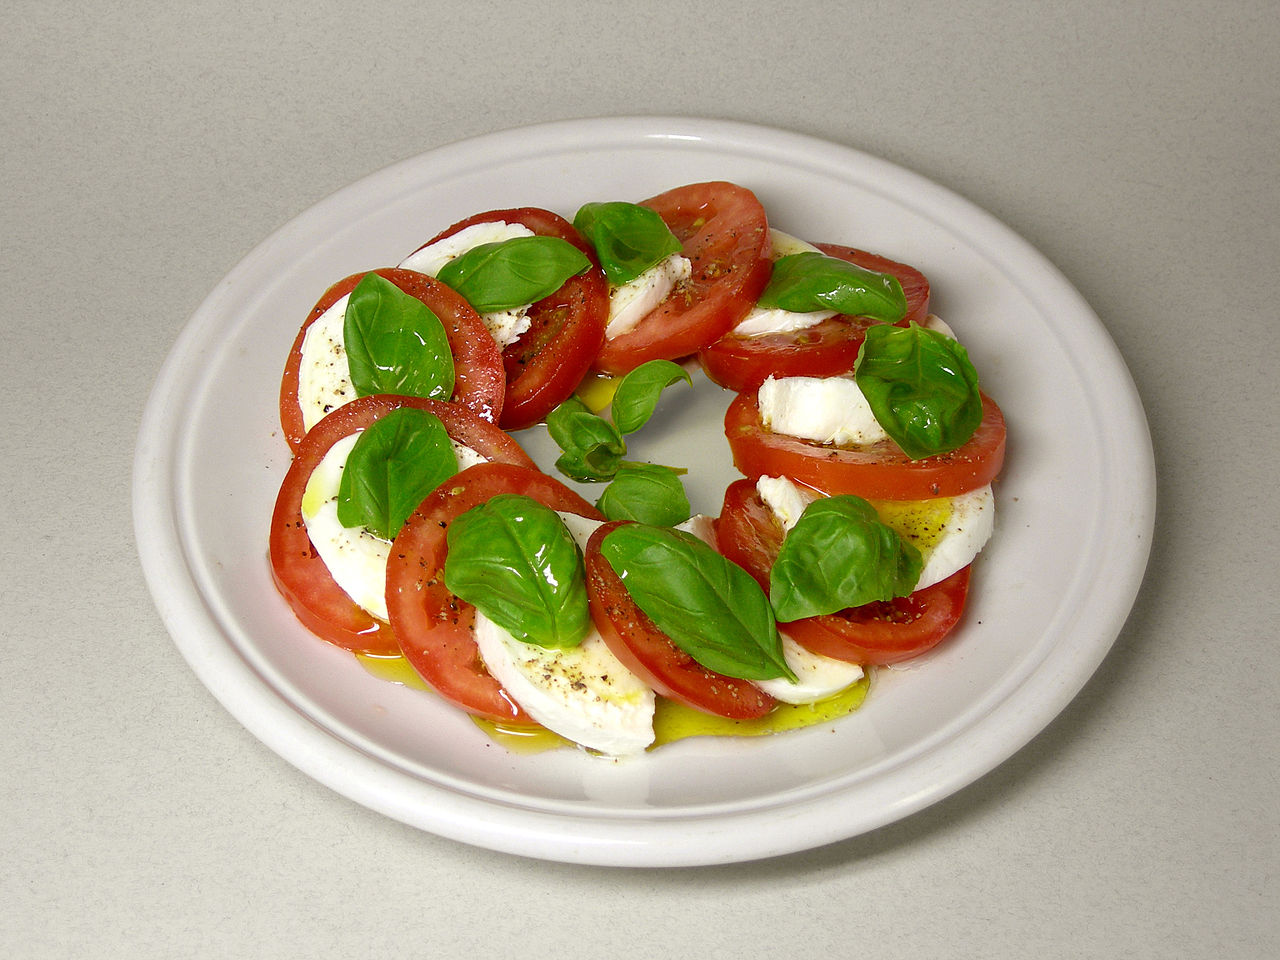 The Caprese Salad - A refreshing and tasty meal